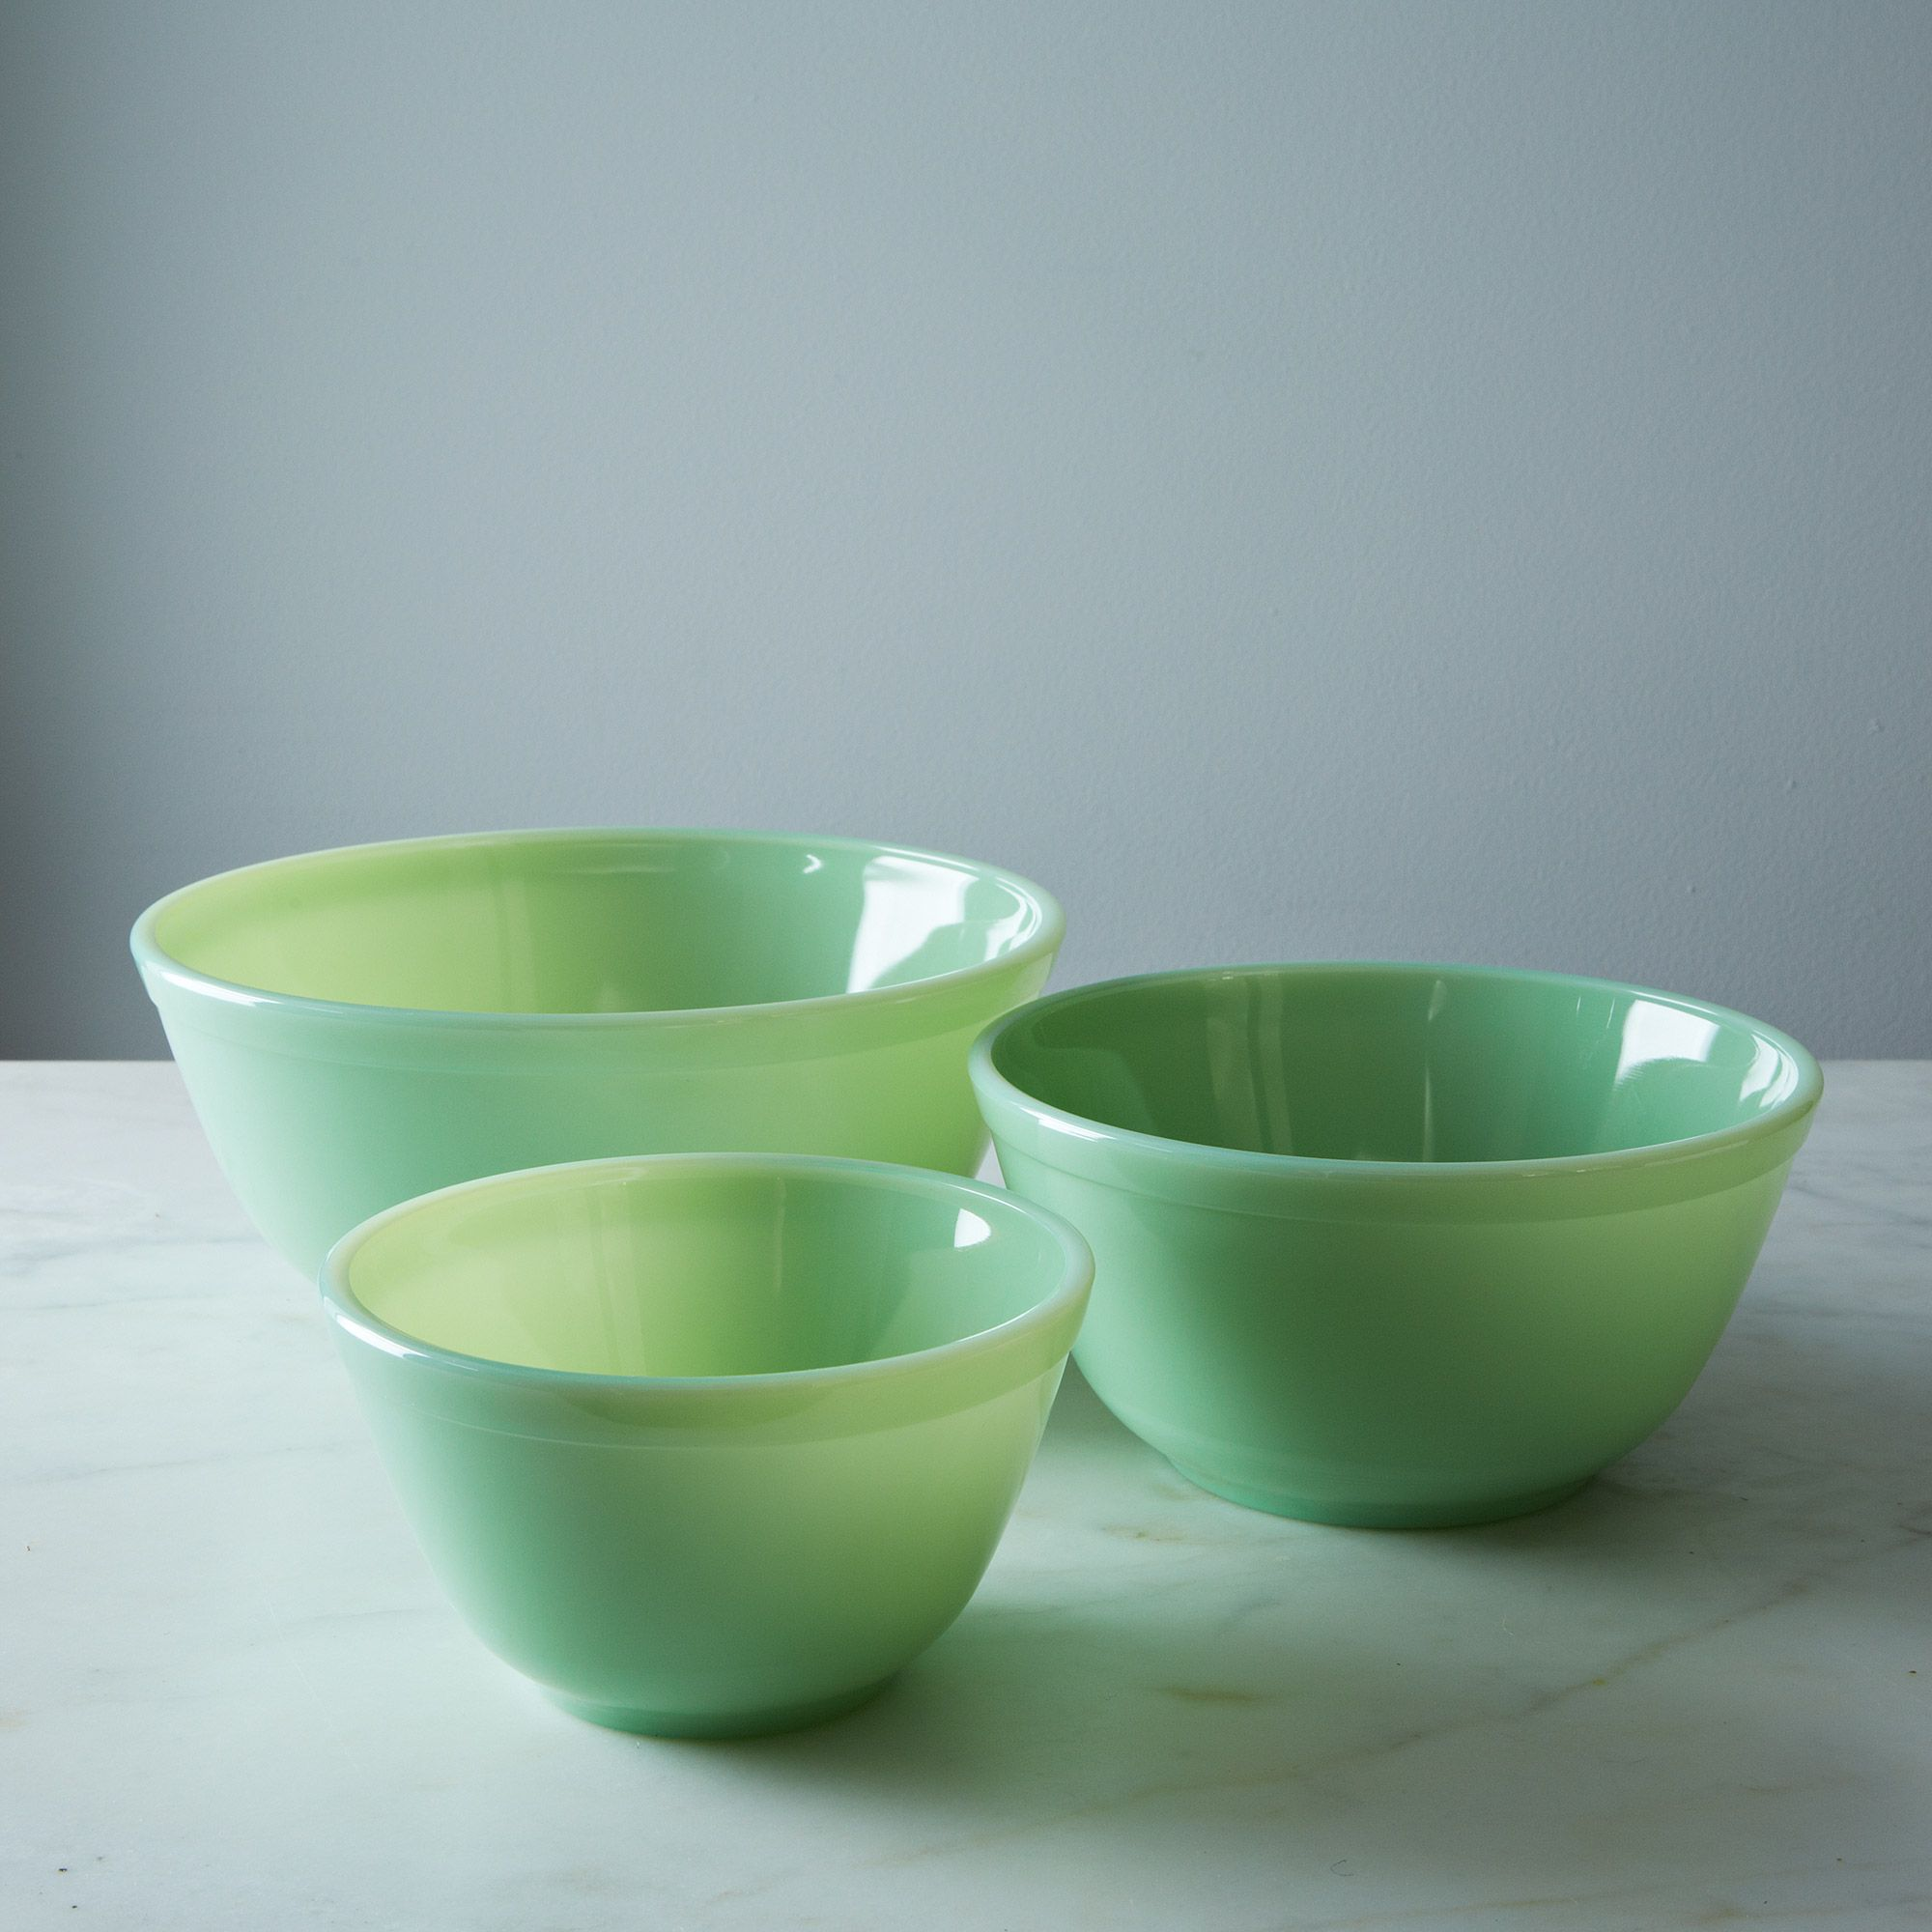 Kitchenware by Miranda Batch